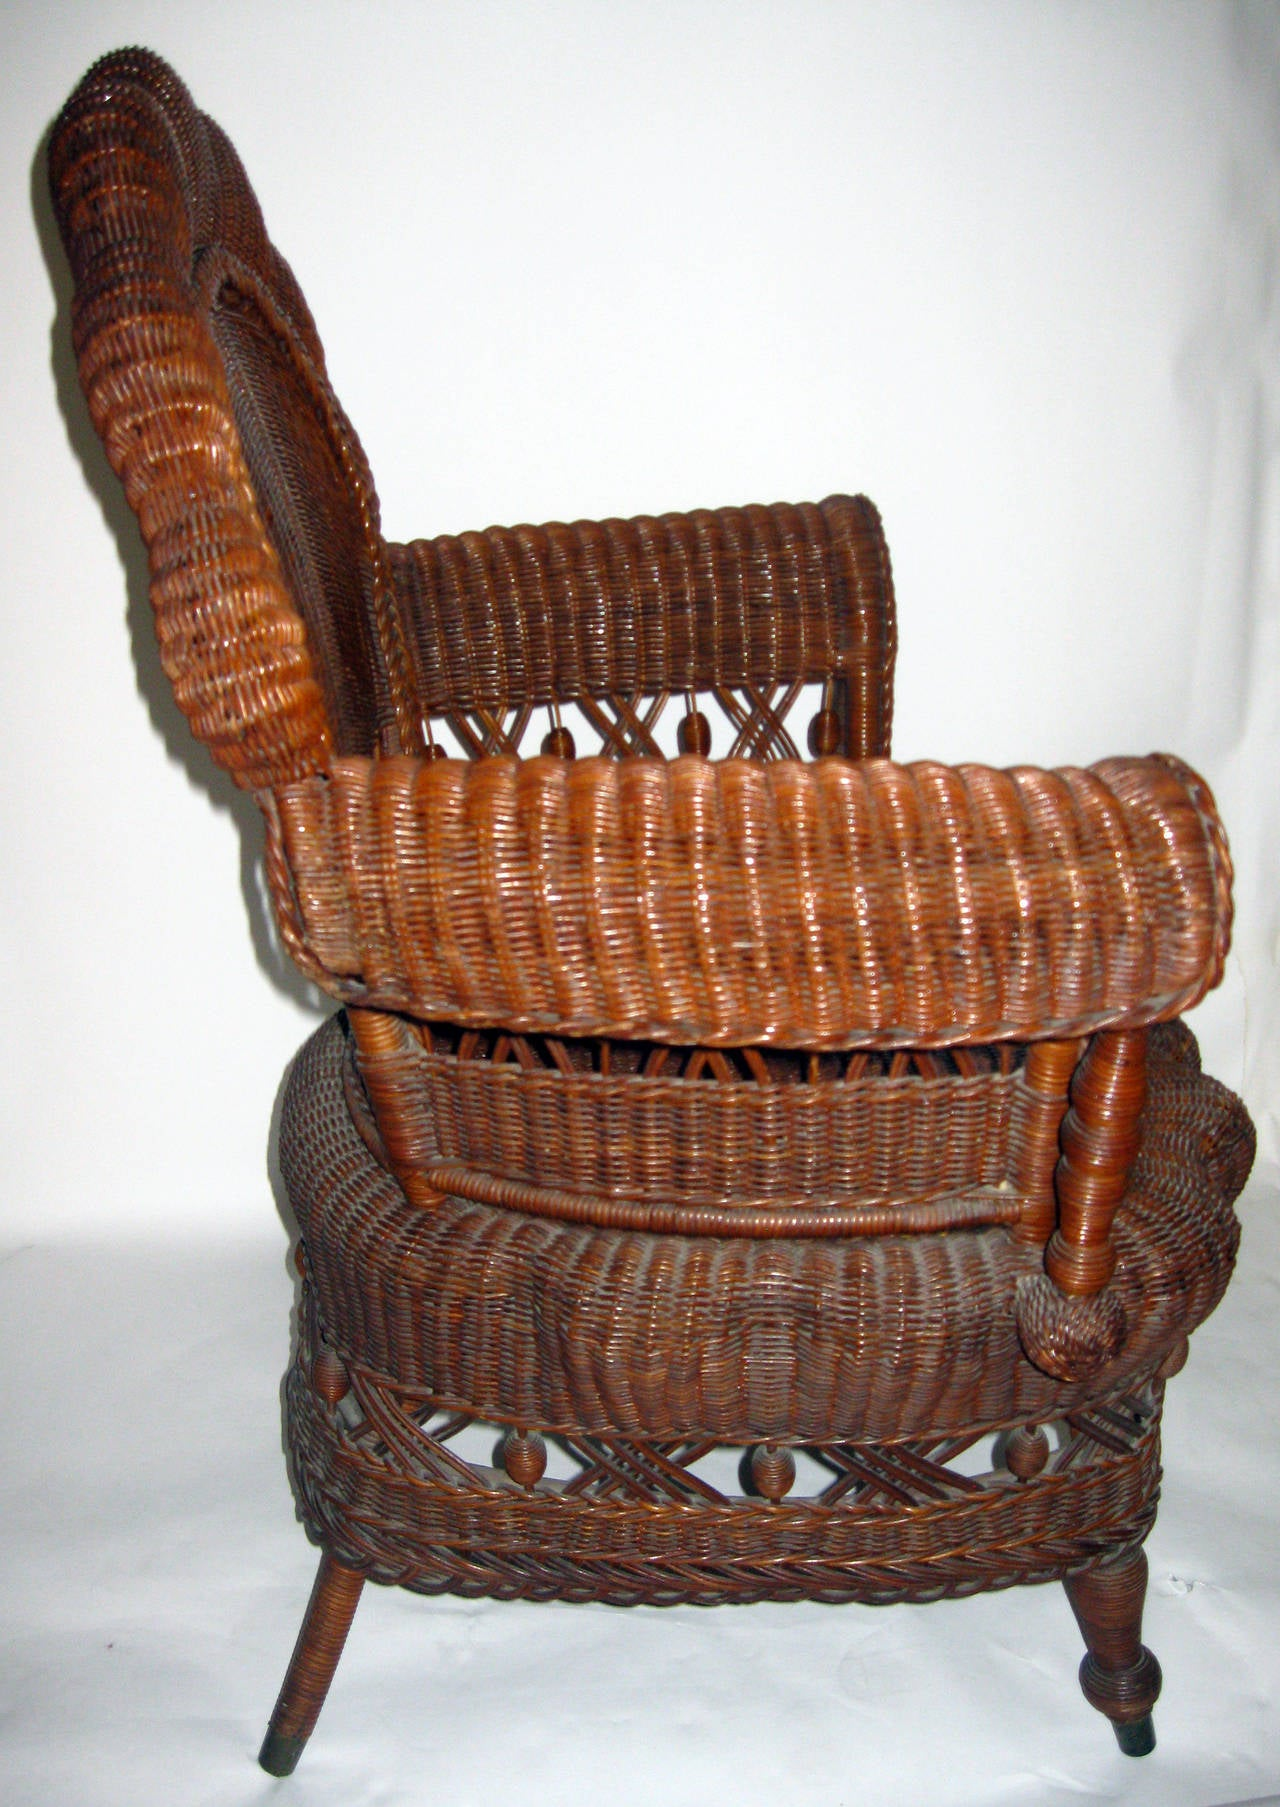 Victorian 19th Century American Wicker Heywood Brothers Armchair